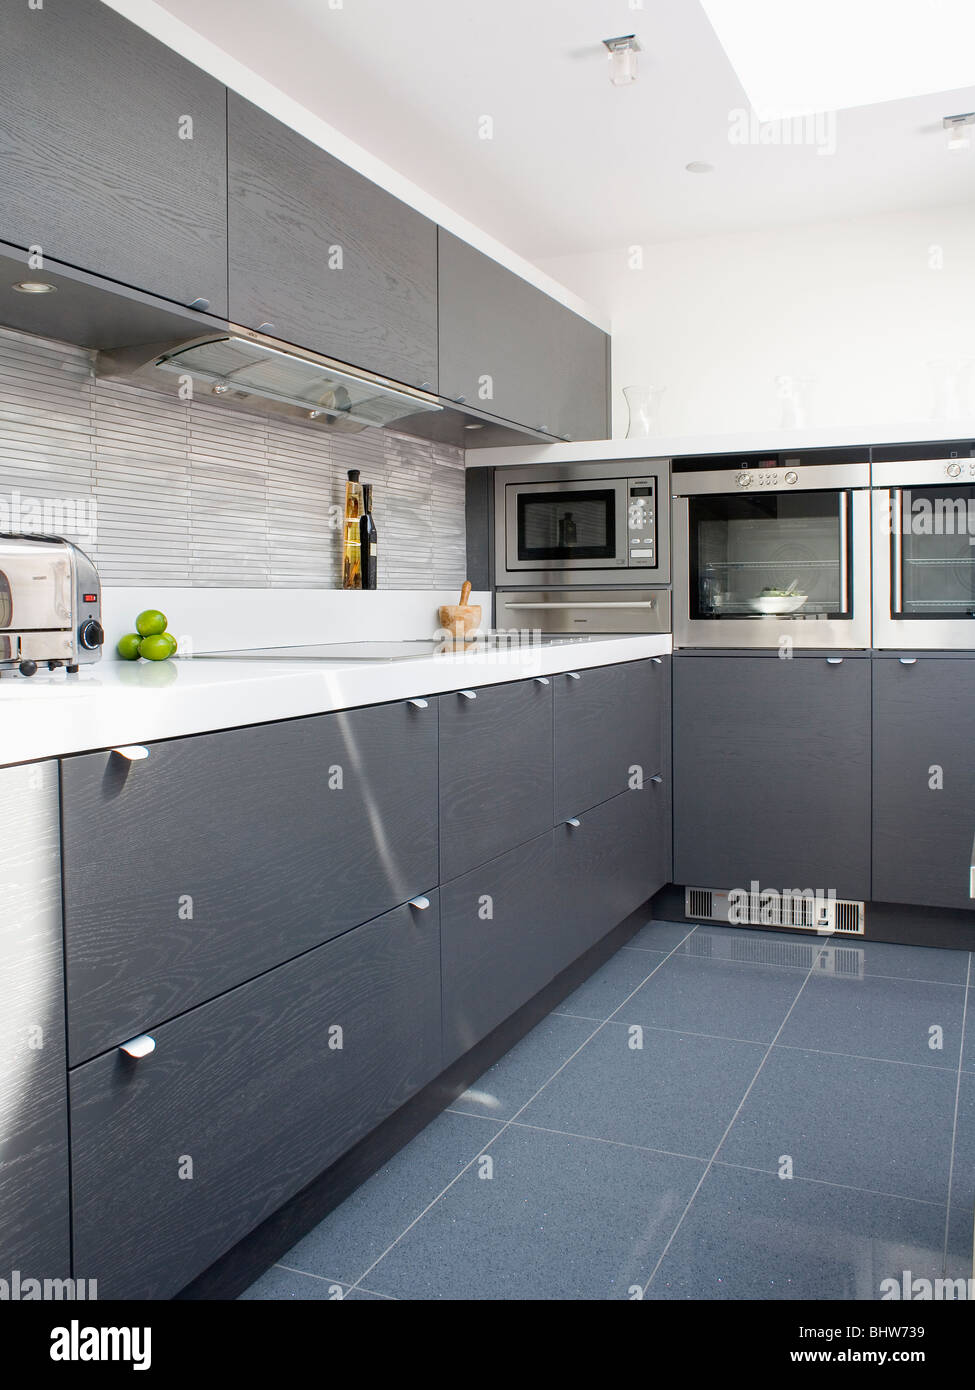 Grey Ceramic Floor Tiles In Modern White Kitchen With Dark Gray - Grey and white kitchen units